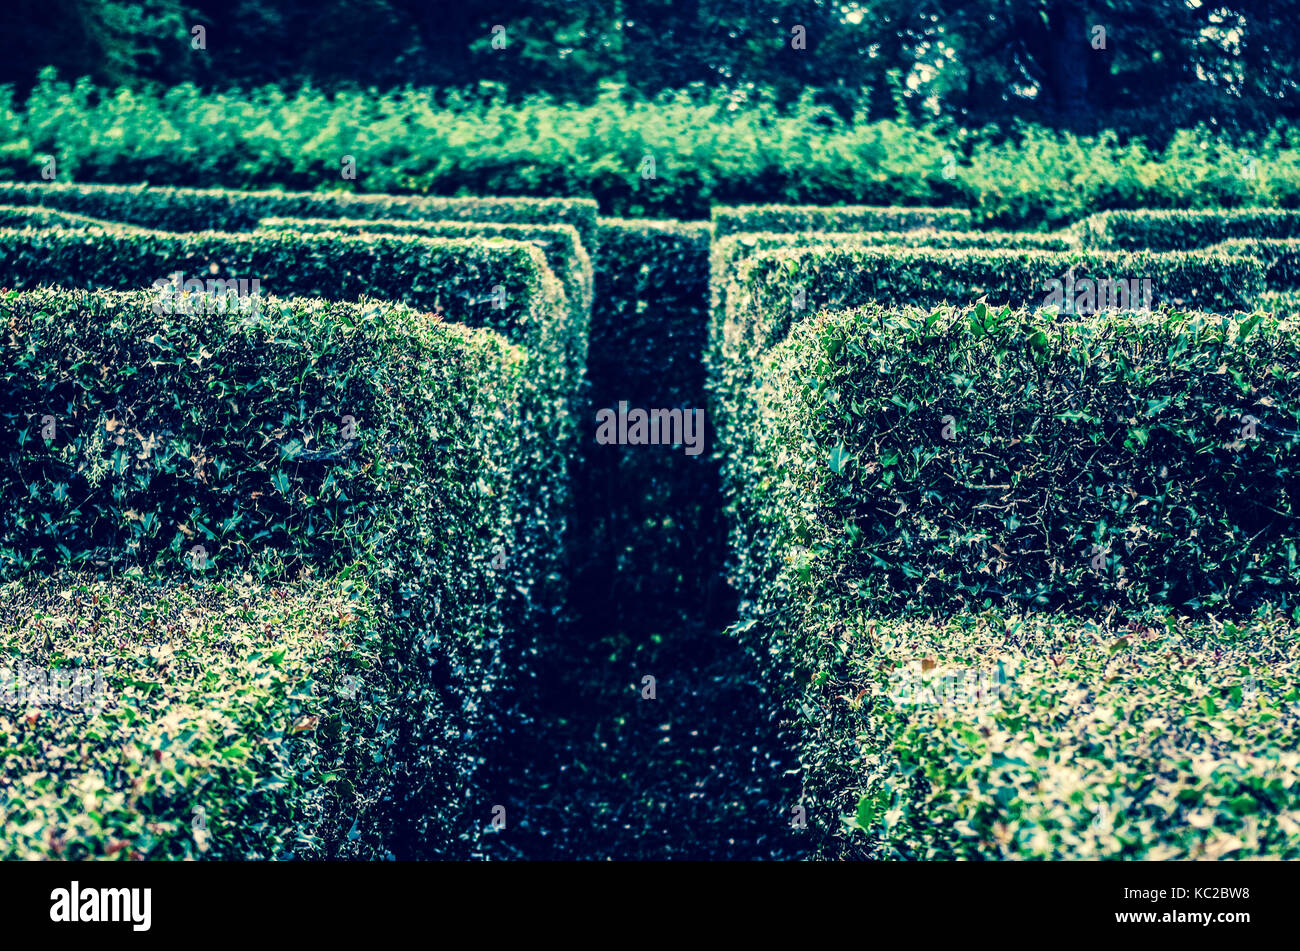 Entering a hedge maze in the Scottish highlands. - Stock Image